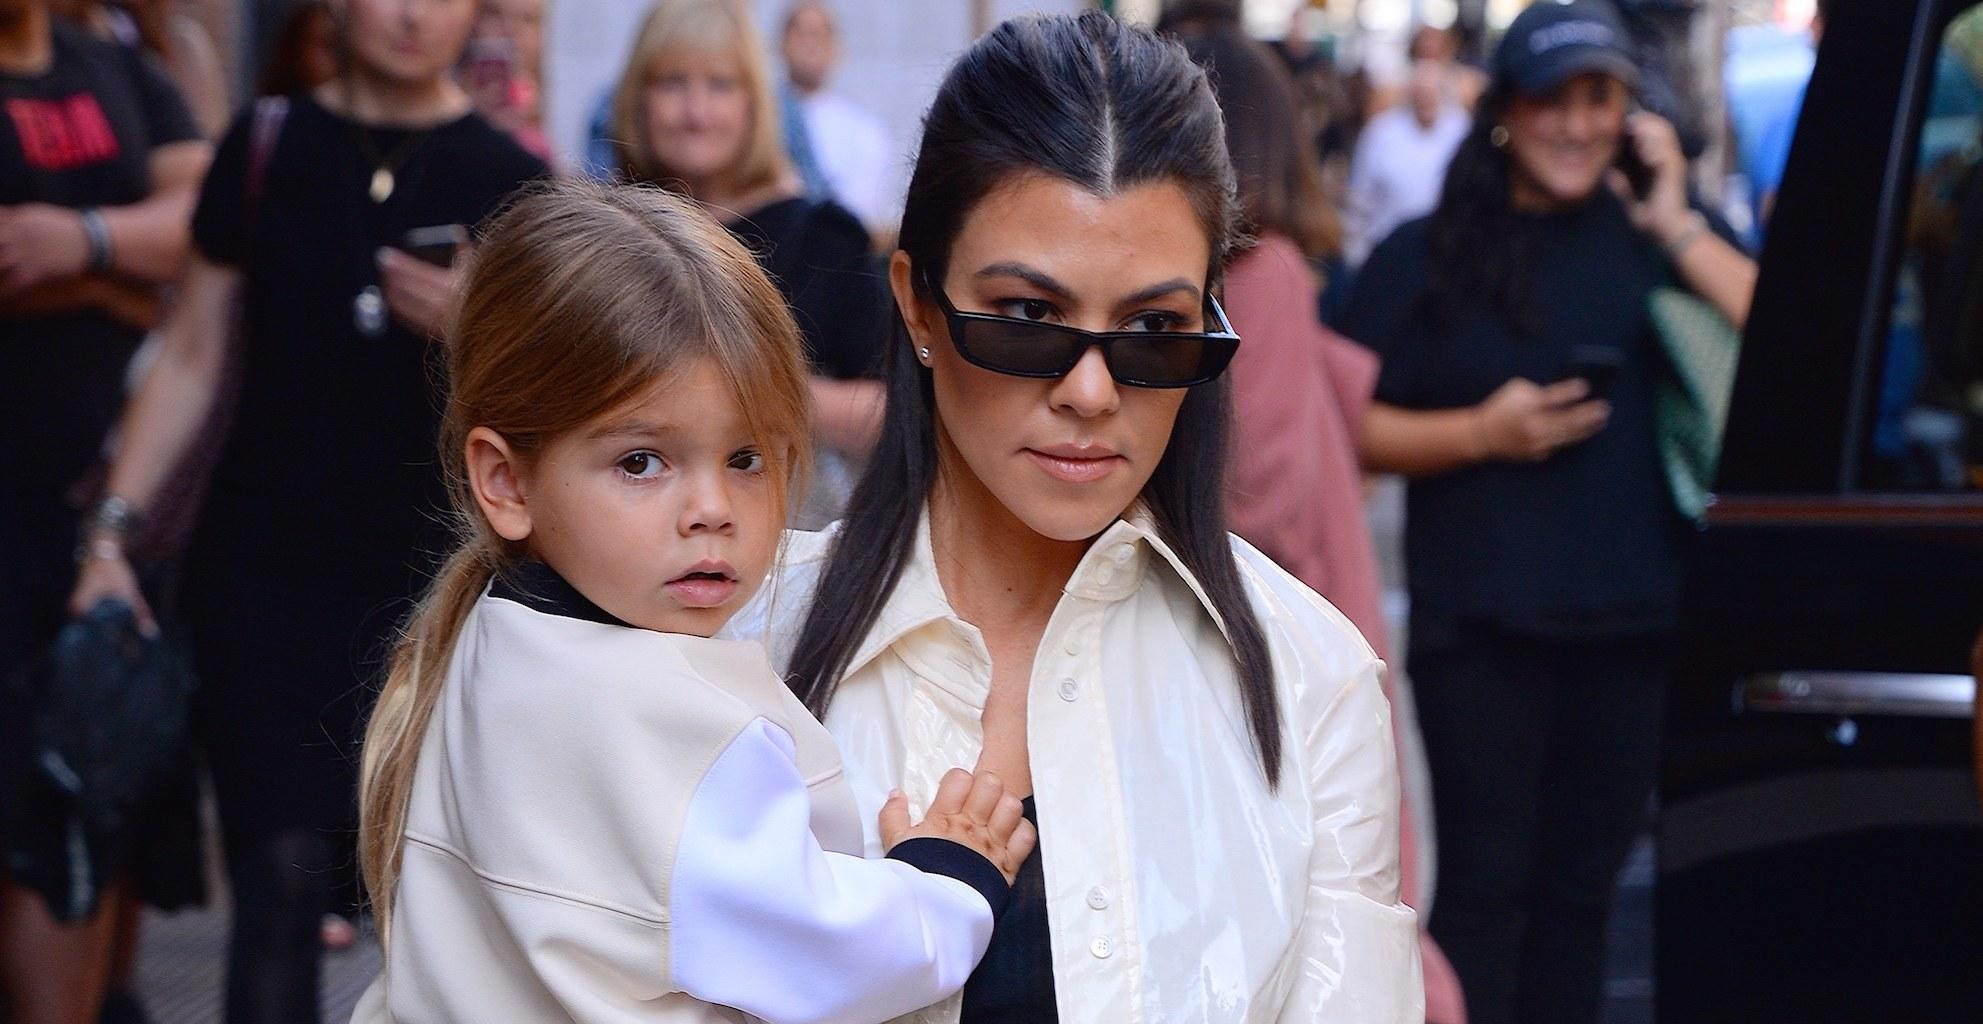 KUWK: Kourtney Kardashian's 4-Year-Old Son Flips Paparazzi Off In Viral Video!